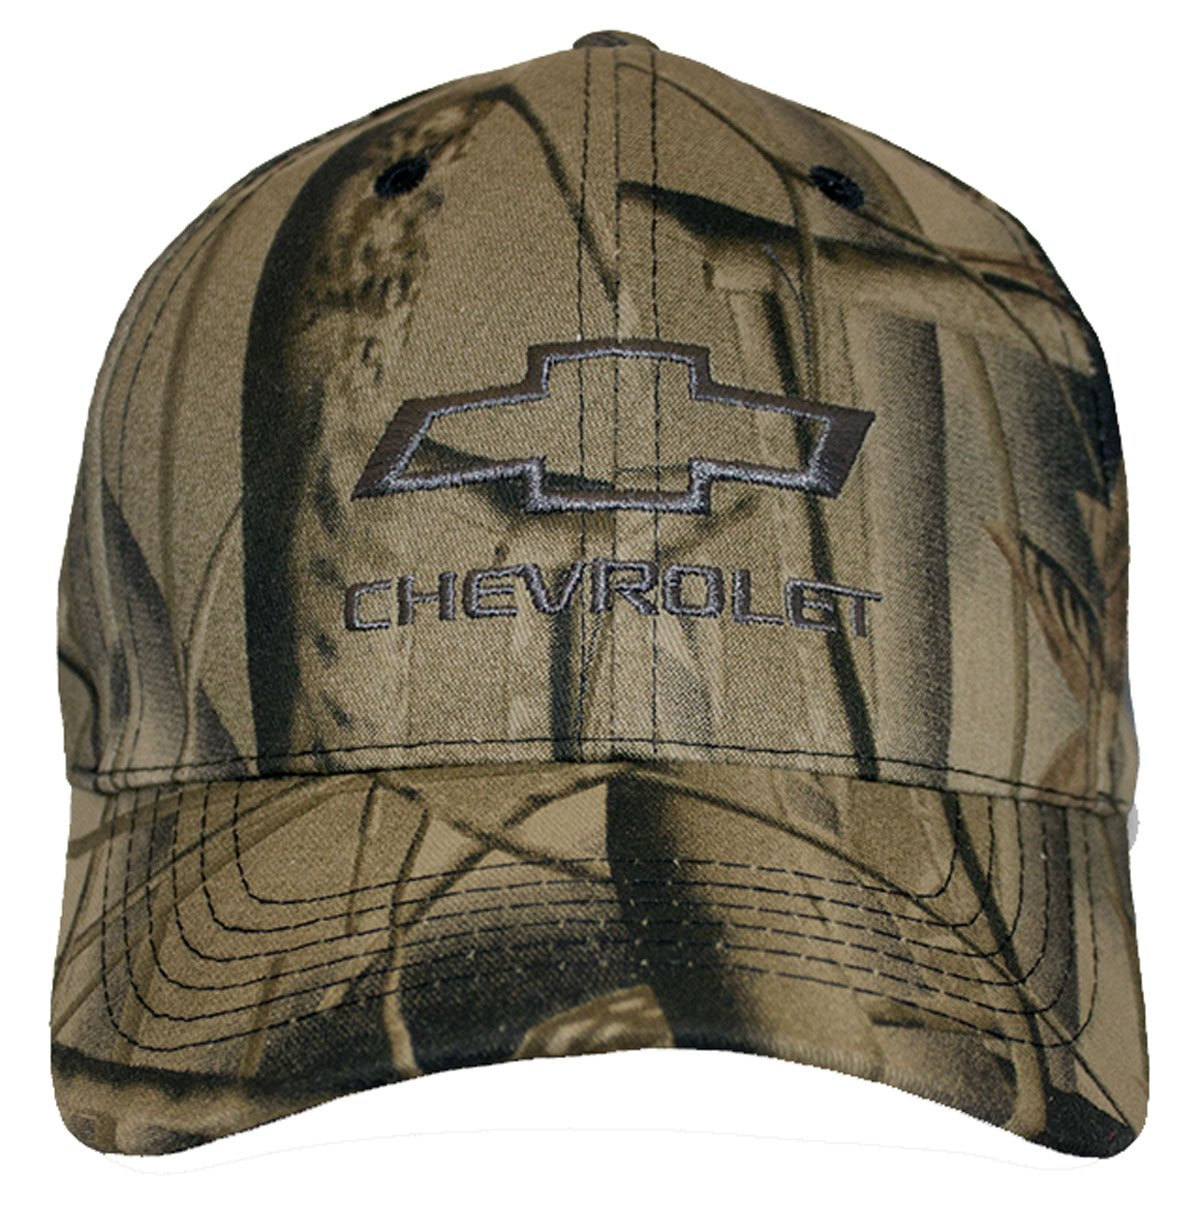 Gregs Automotive Chevrolet Chevy Bowtie Hat Cap Brown Bundle Includes 1 Hat and 1 Driving Style Decal